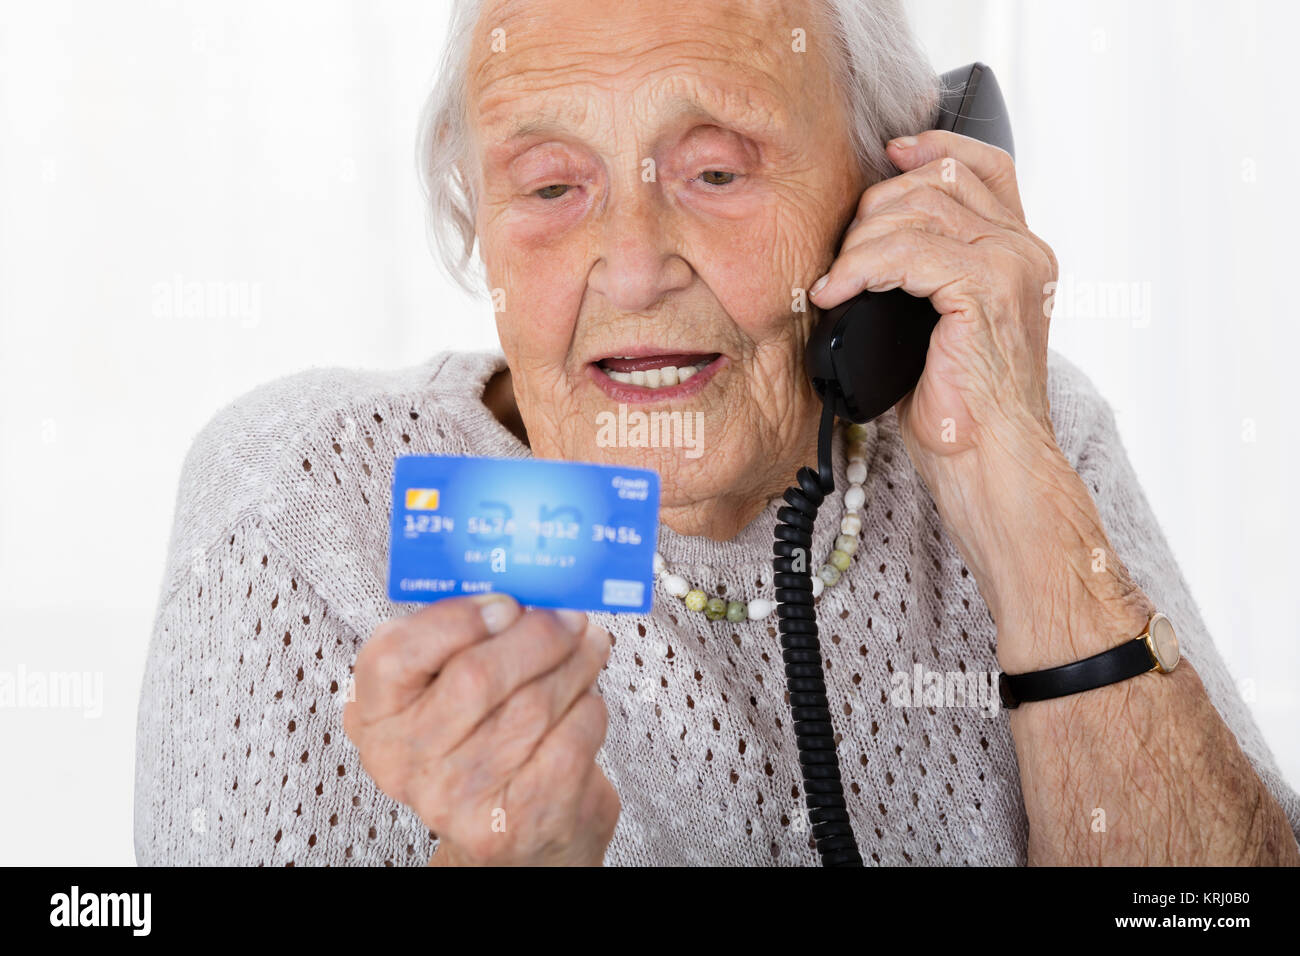 Senior Woman With Credit Card On Phone - Stock Image